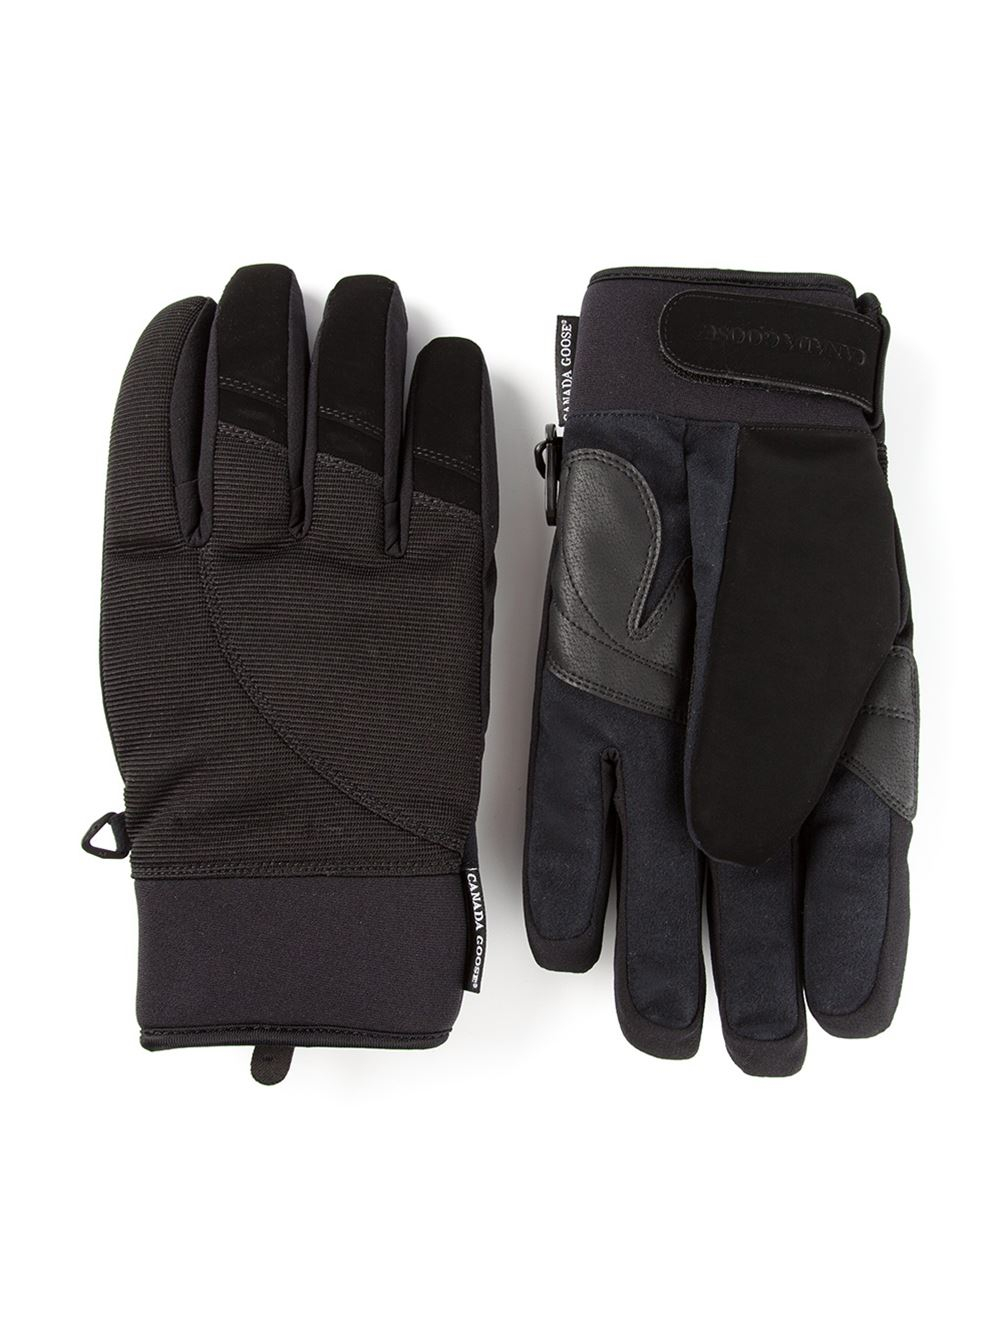 Canada Goose Driving Gloves Review